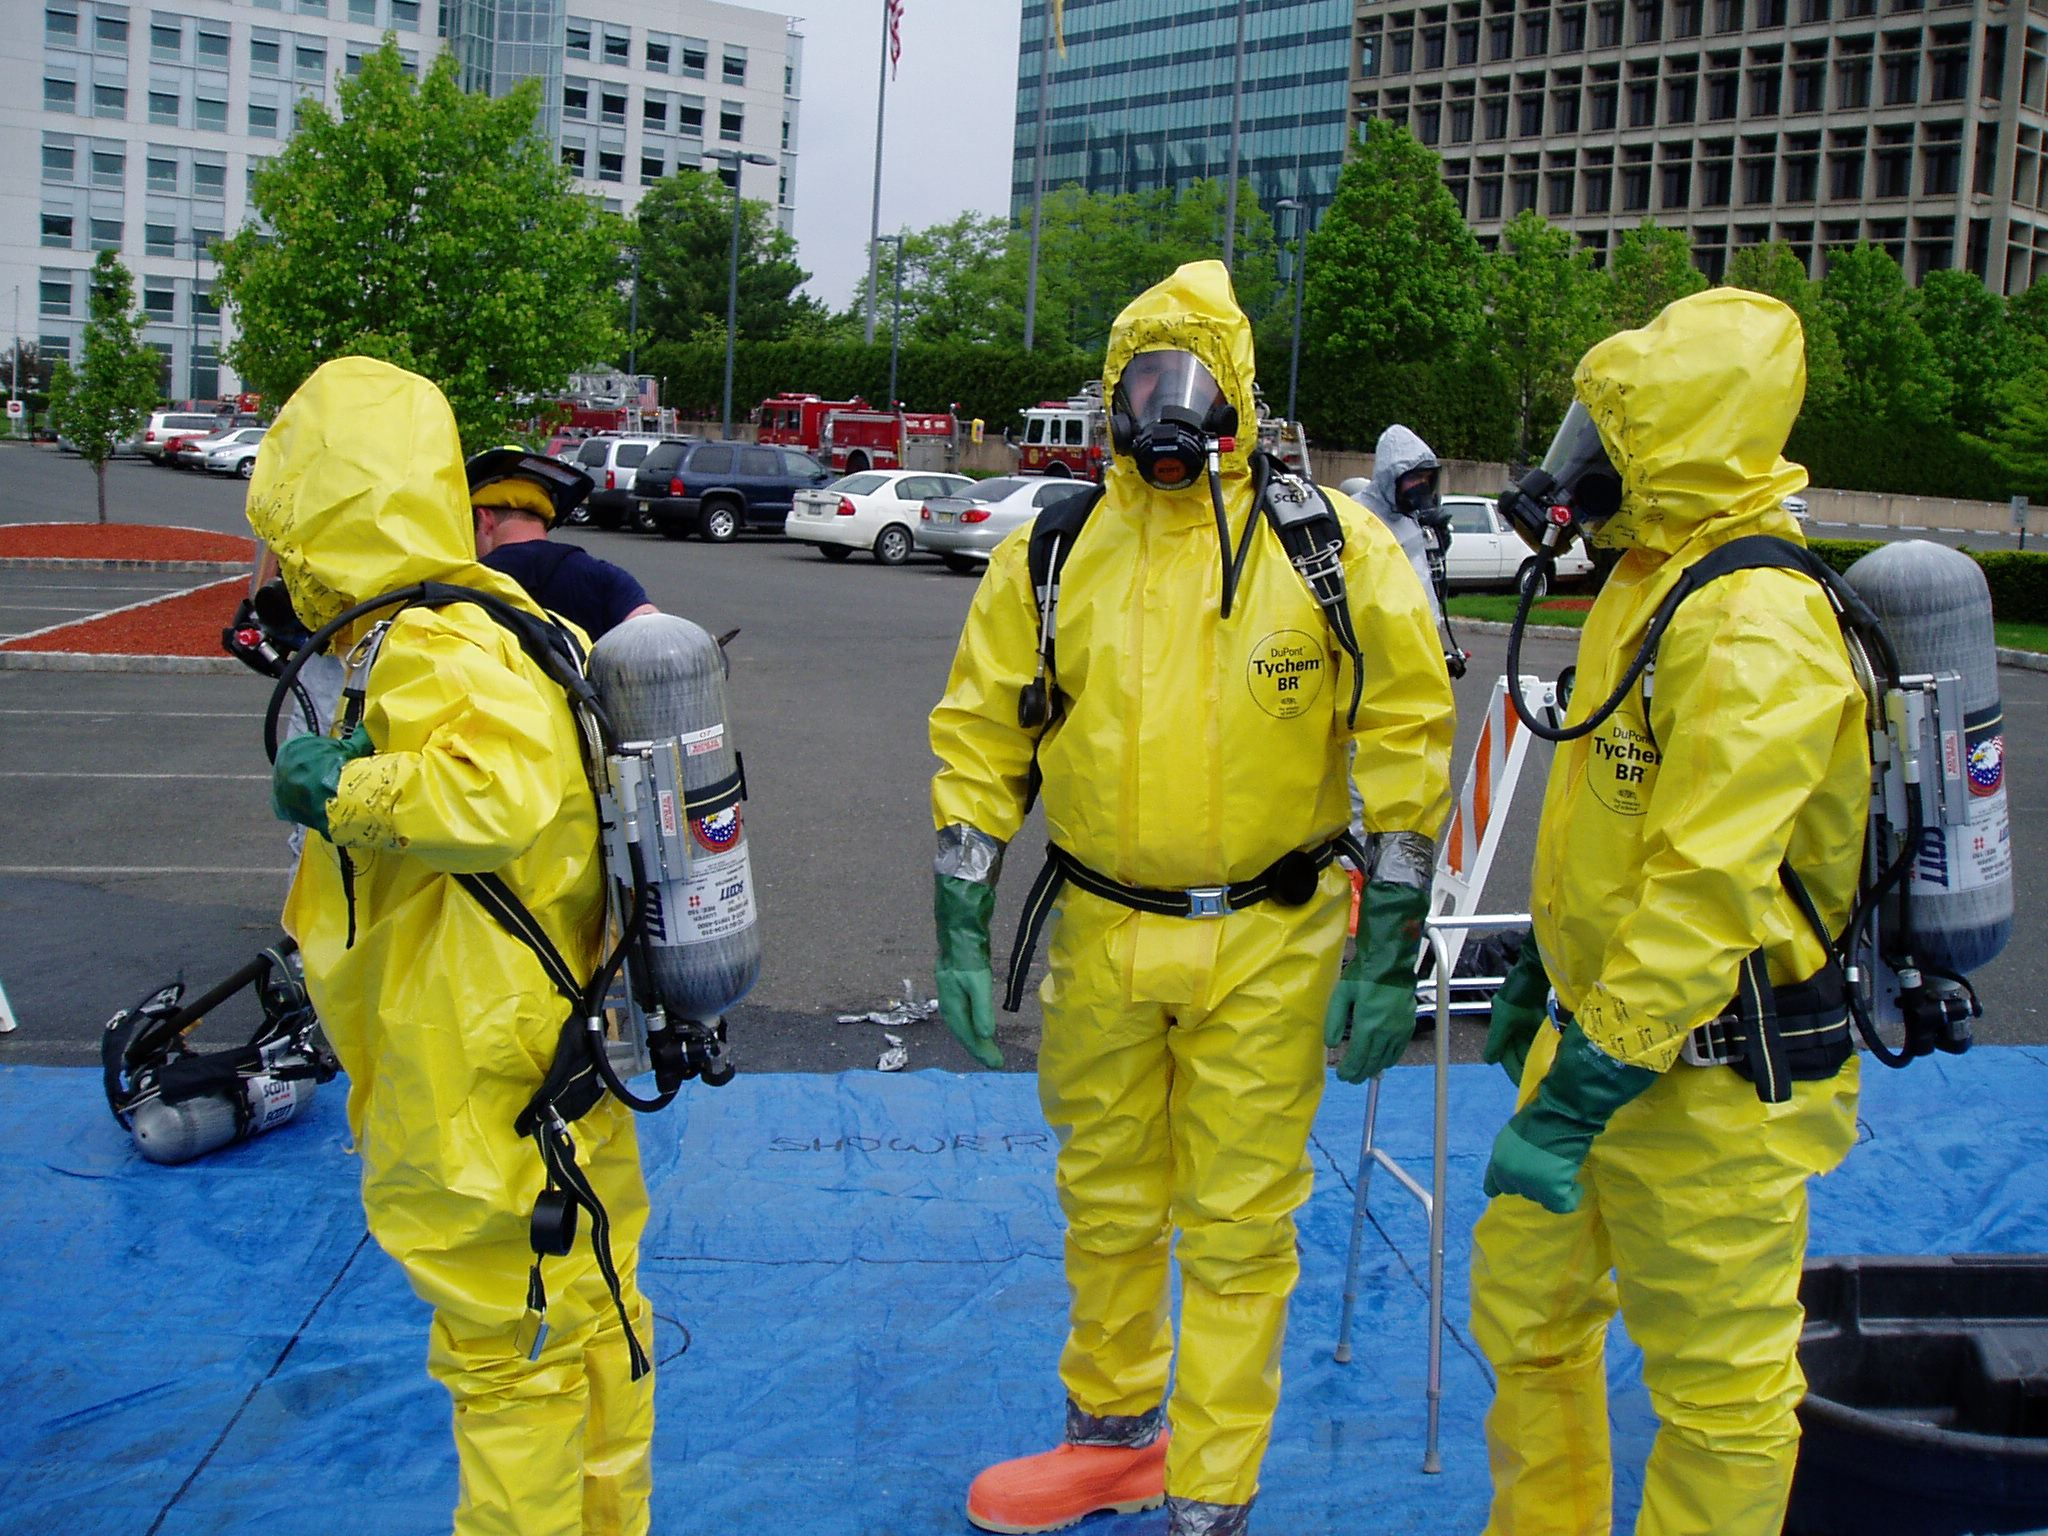 Hazmat Yellow Suits